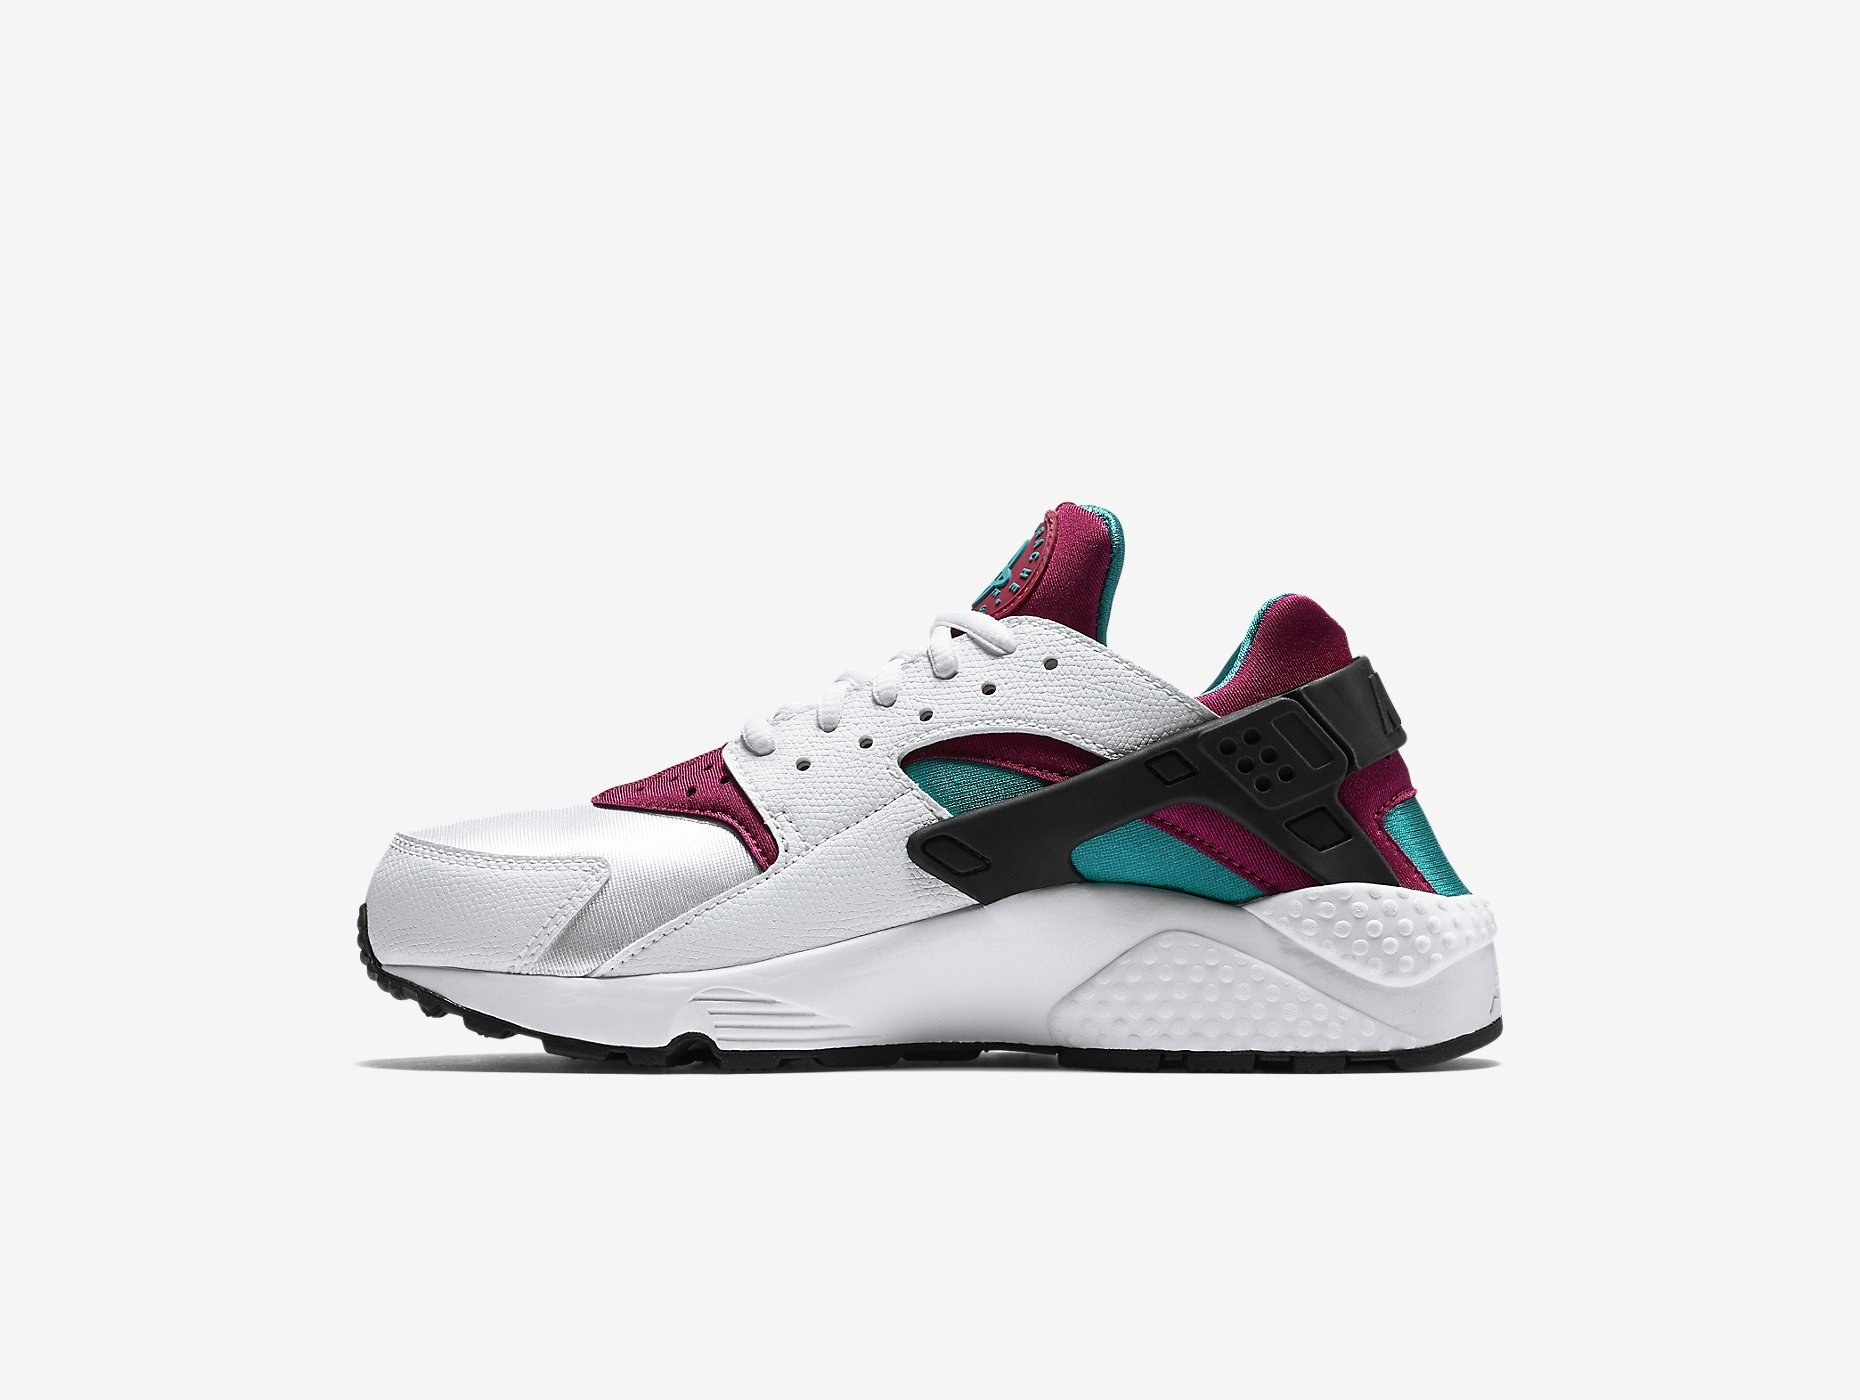 Huarache rose fushia carrelage for Carrelage fushia